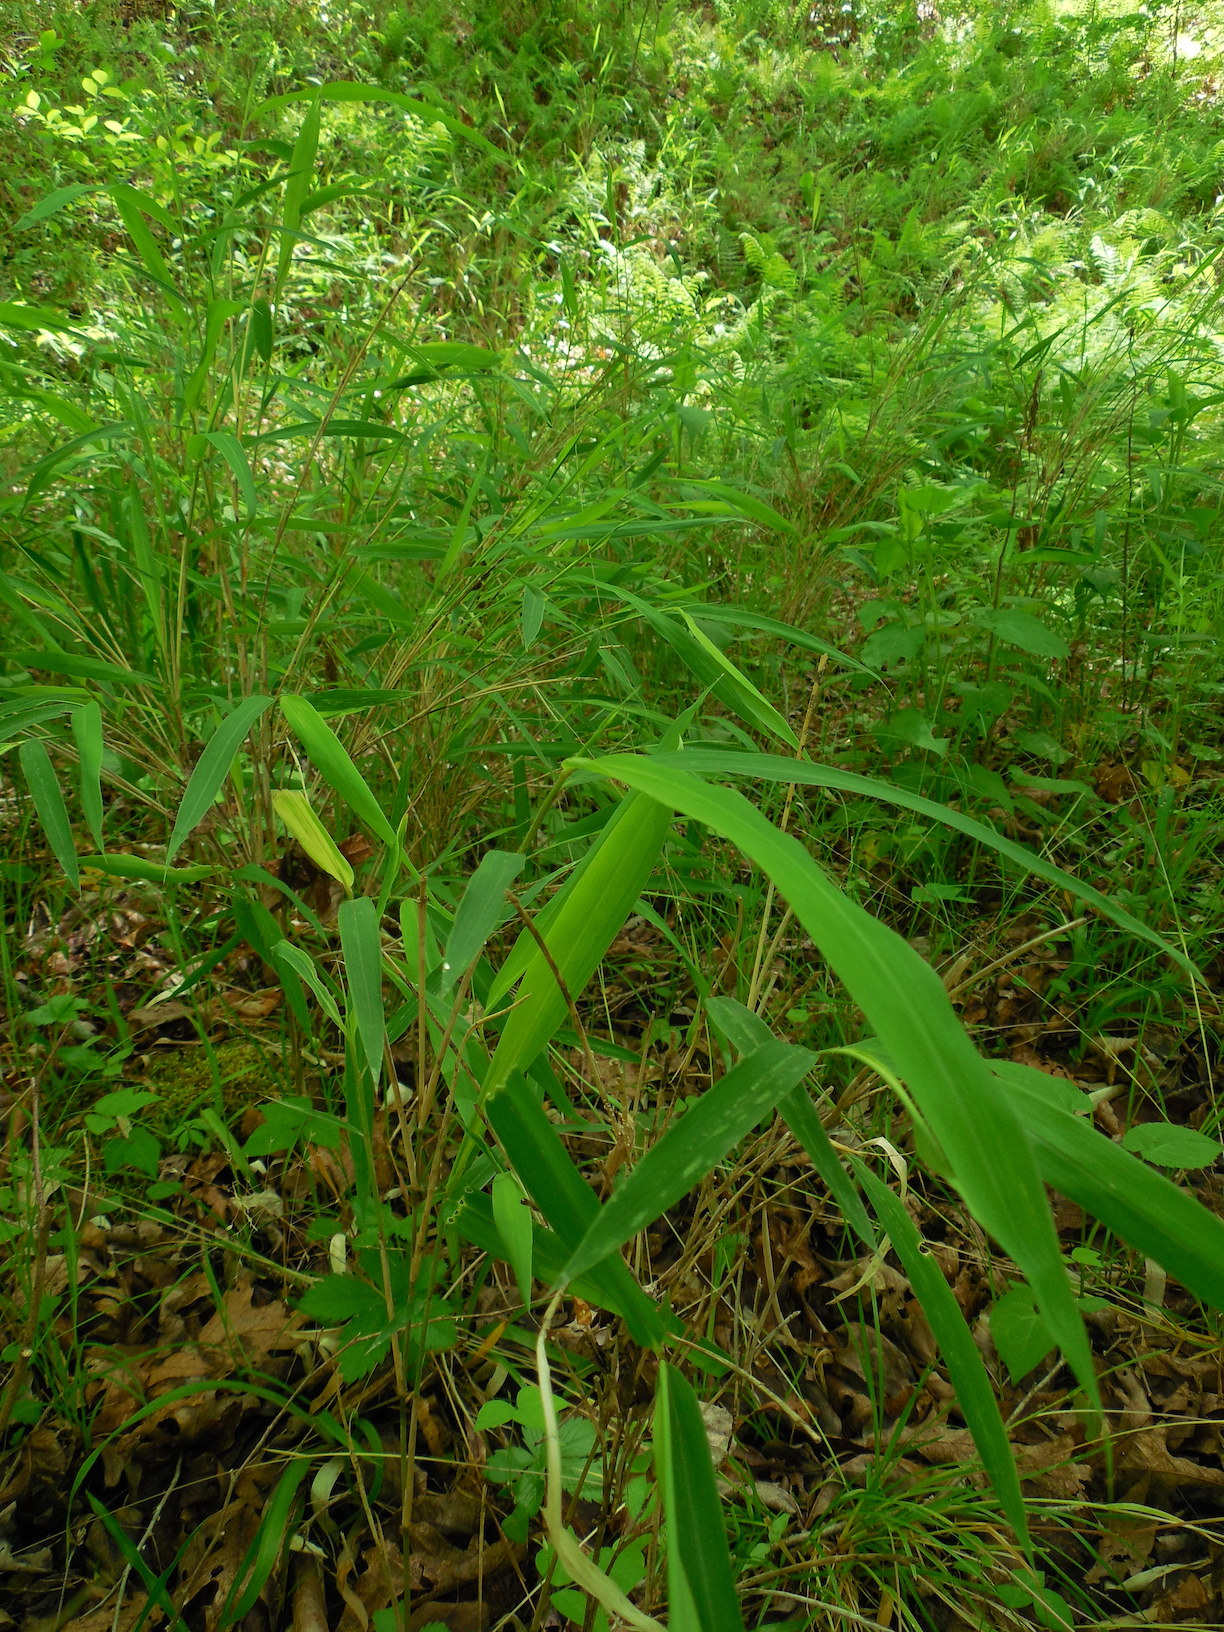 The Scientific Name is Arundinaria appalachiana [split from Arundinaria gigantea and Arundinaria tecta]. You will likely hear them called Hill Cane. This picture shows the A colony of Hillside Cane. of Arundinaria appalachiana [split from Arundinaria gigantea and Arundinaria tecta]